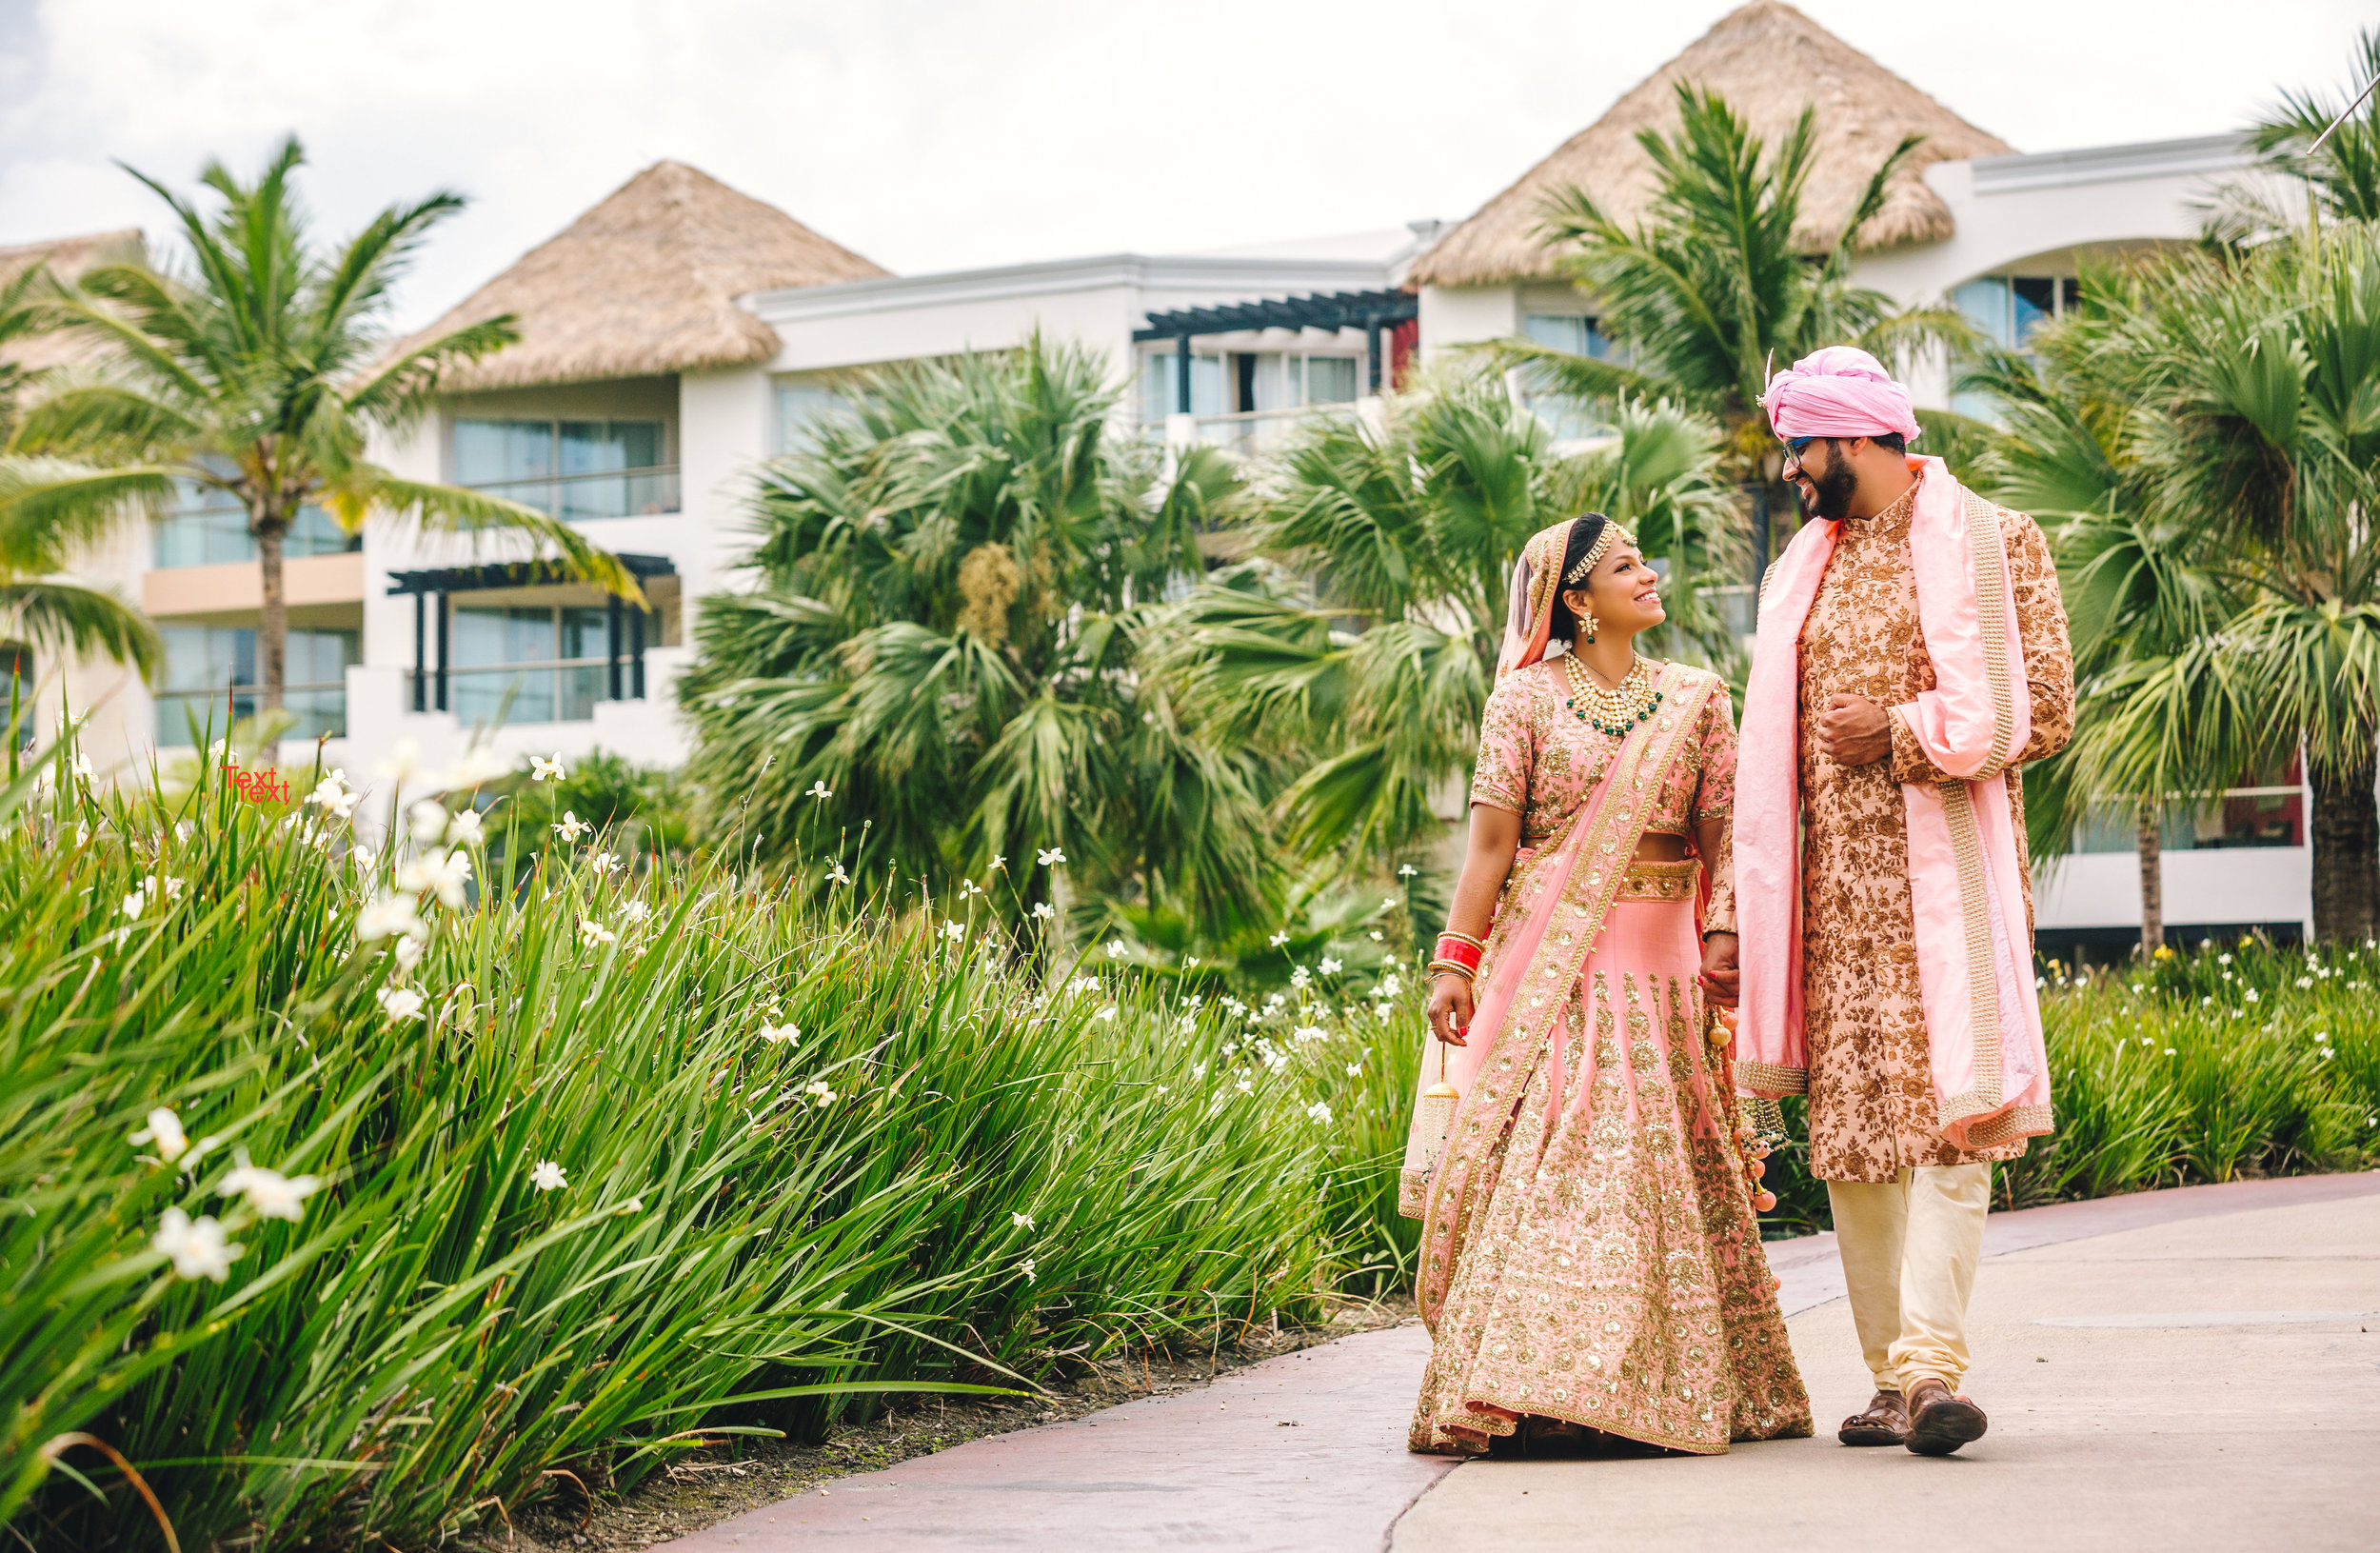 Punta Cana Destination Indian Wedding | Shruti + Nikhil - AMARJOT CHANA PHOTOGRAPHY